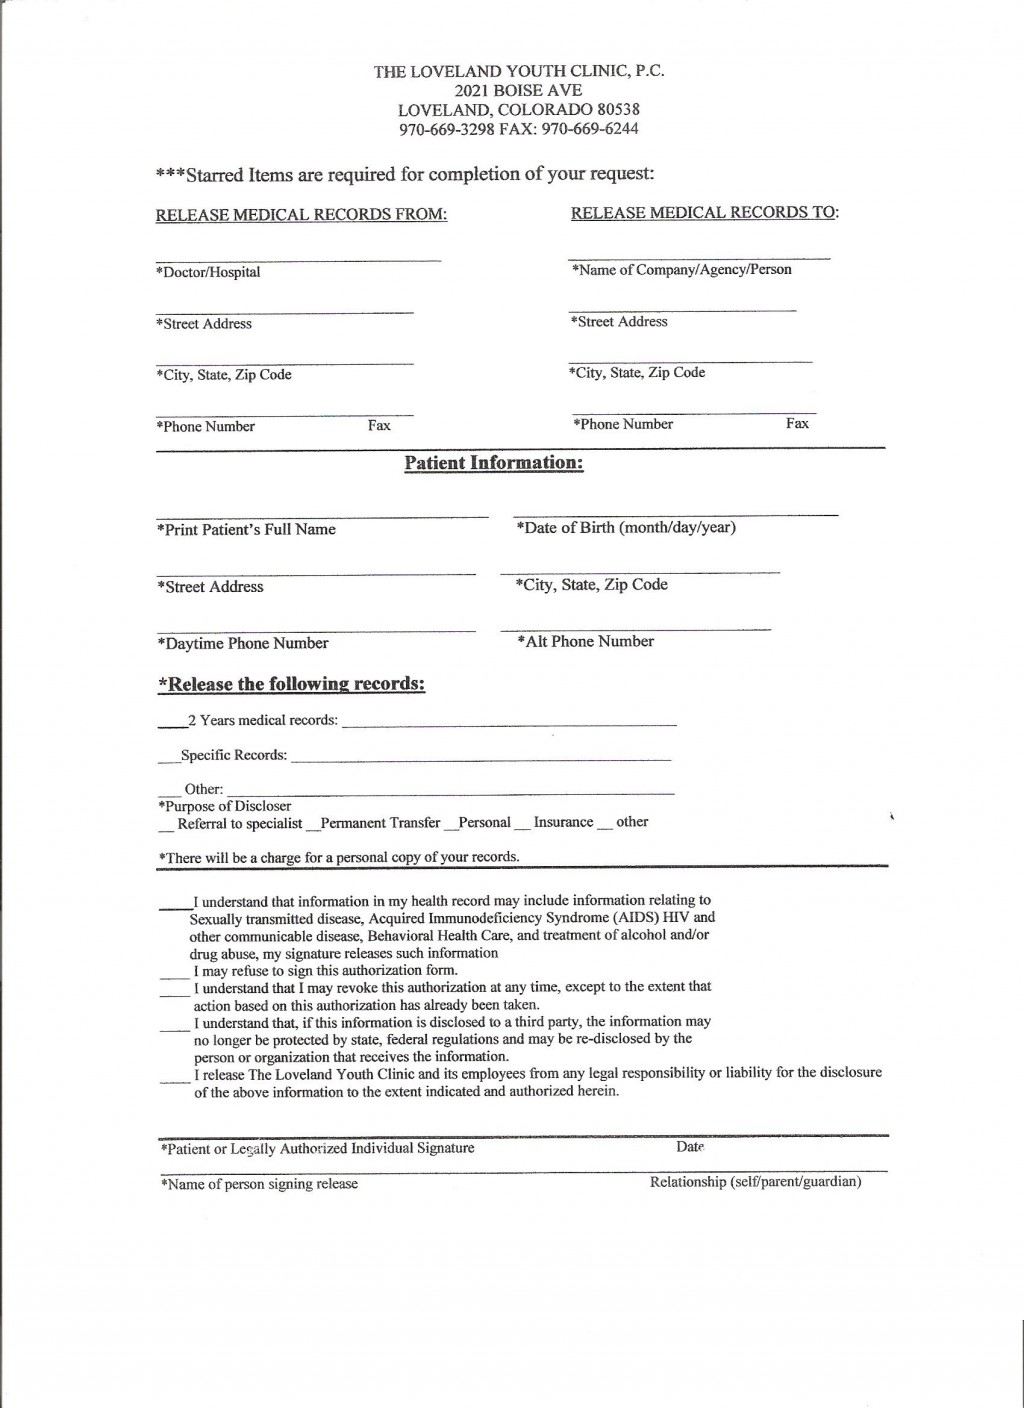 005 Wonderful Medical Record Release Form Template High Def  Request Free PersonalLarge